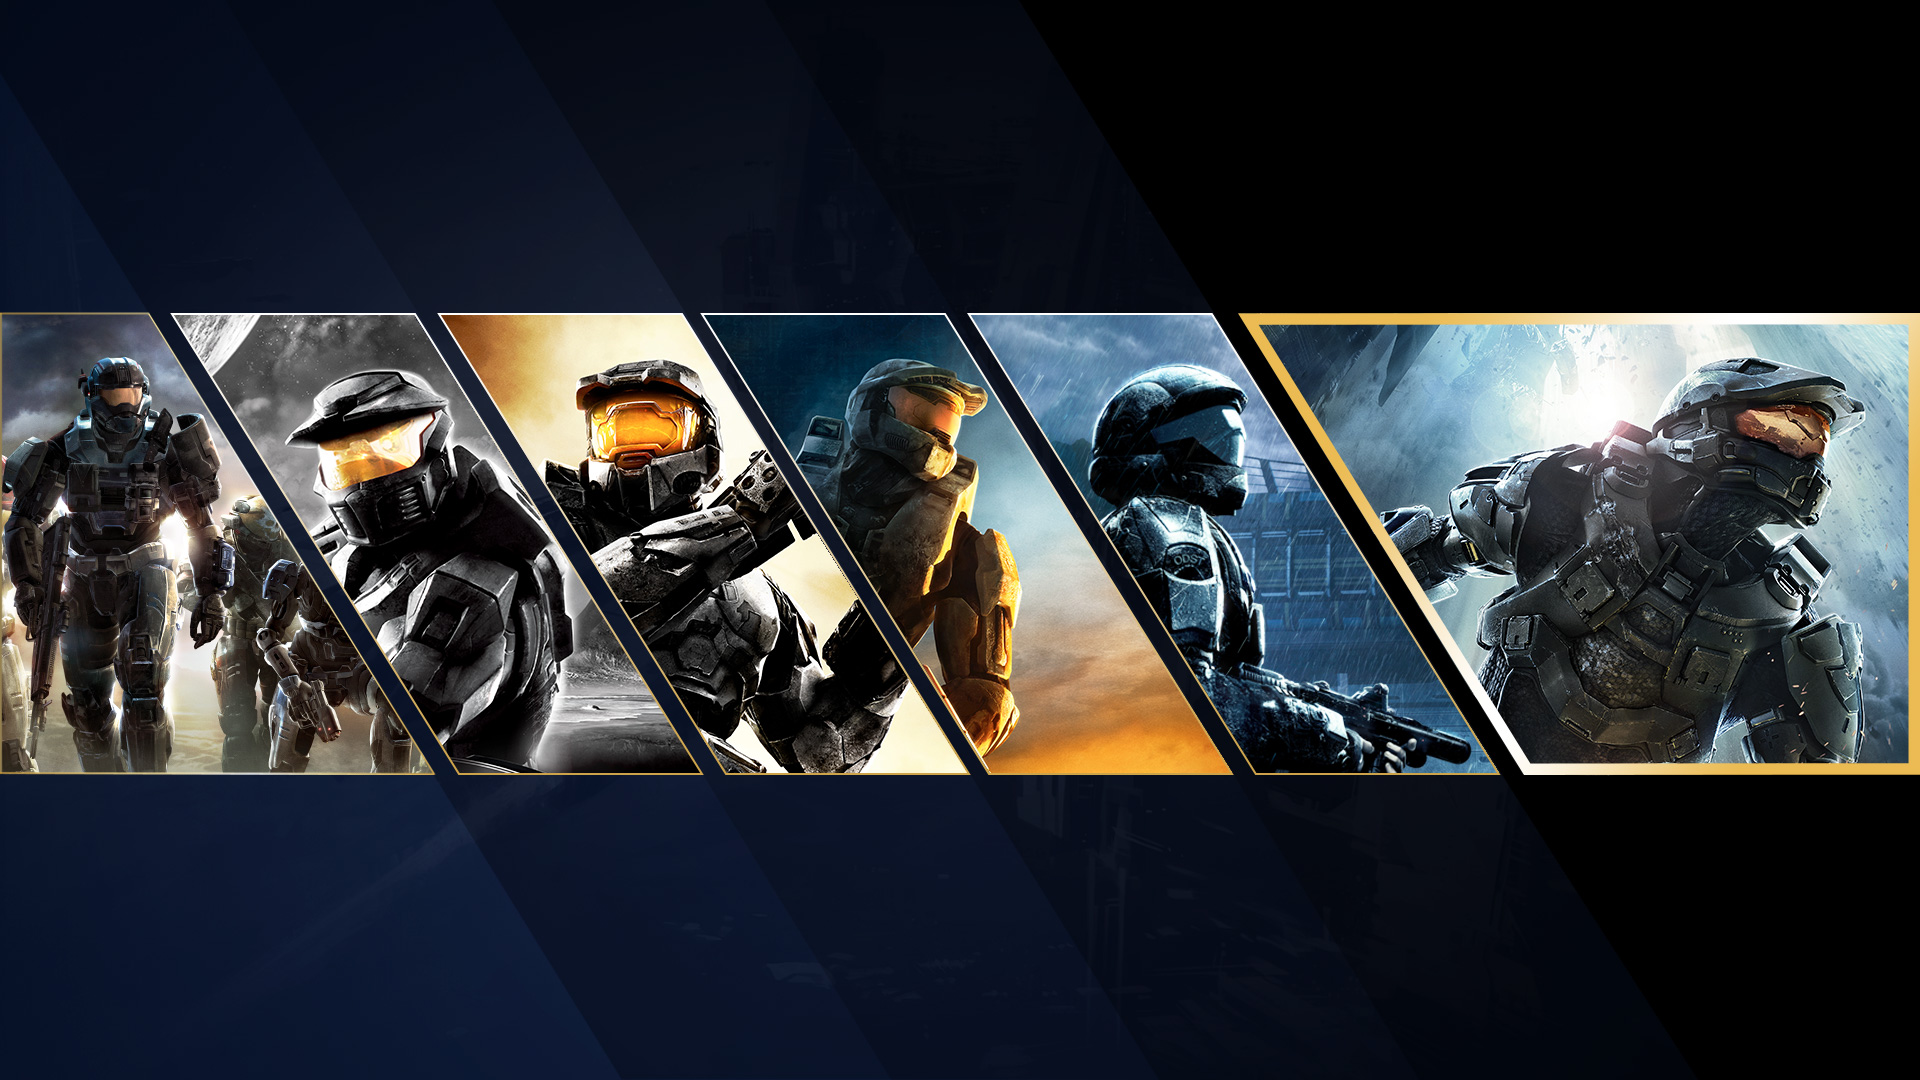 Halo The Master Chief Collection Partidas Halo Official Site